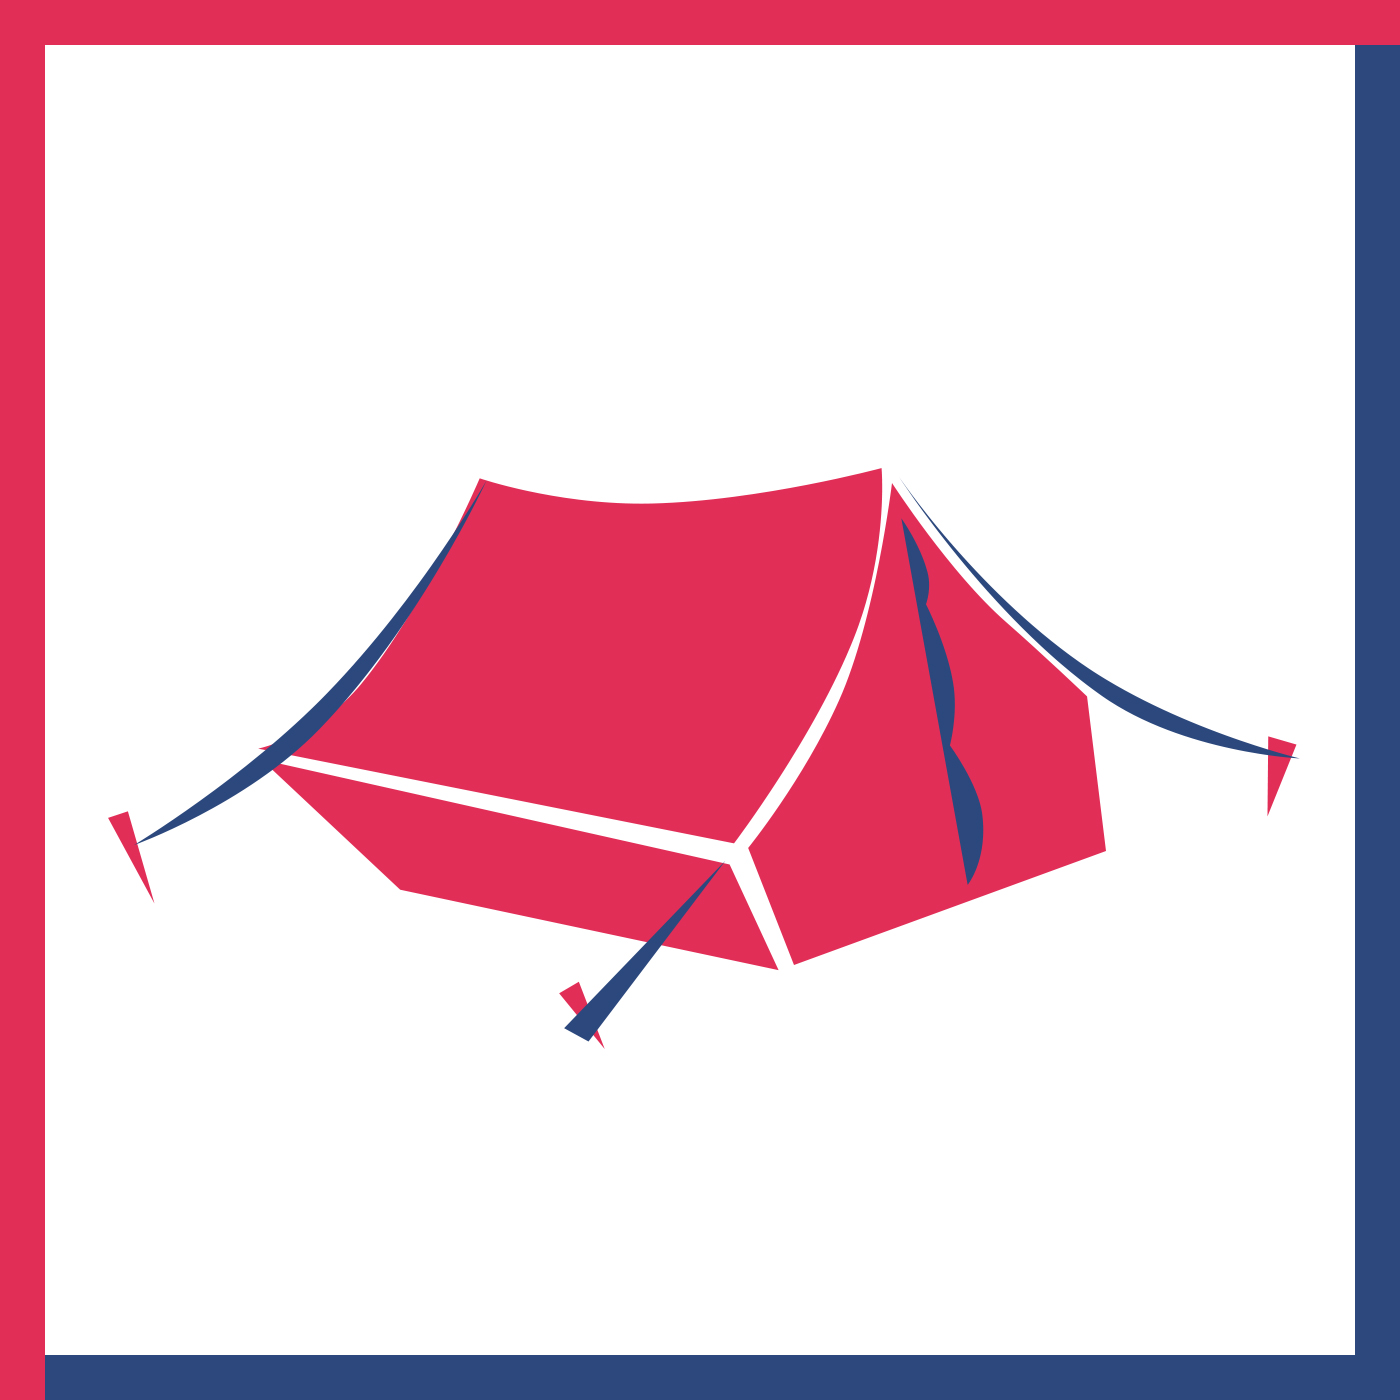 A simple tent, held taut with pegs and rope.